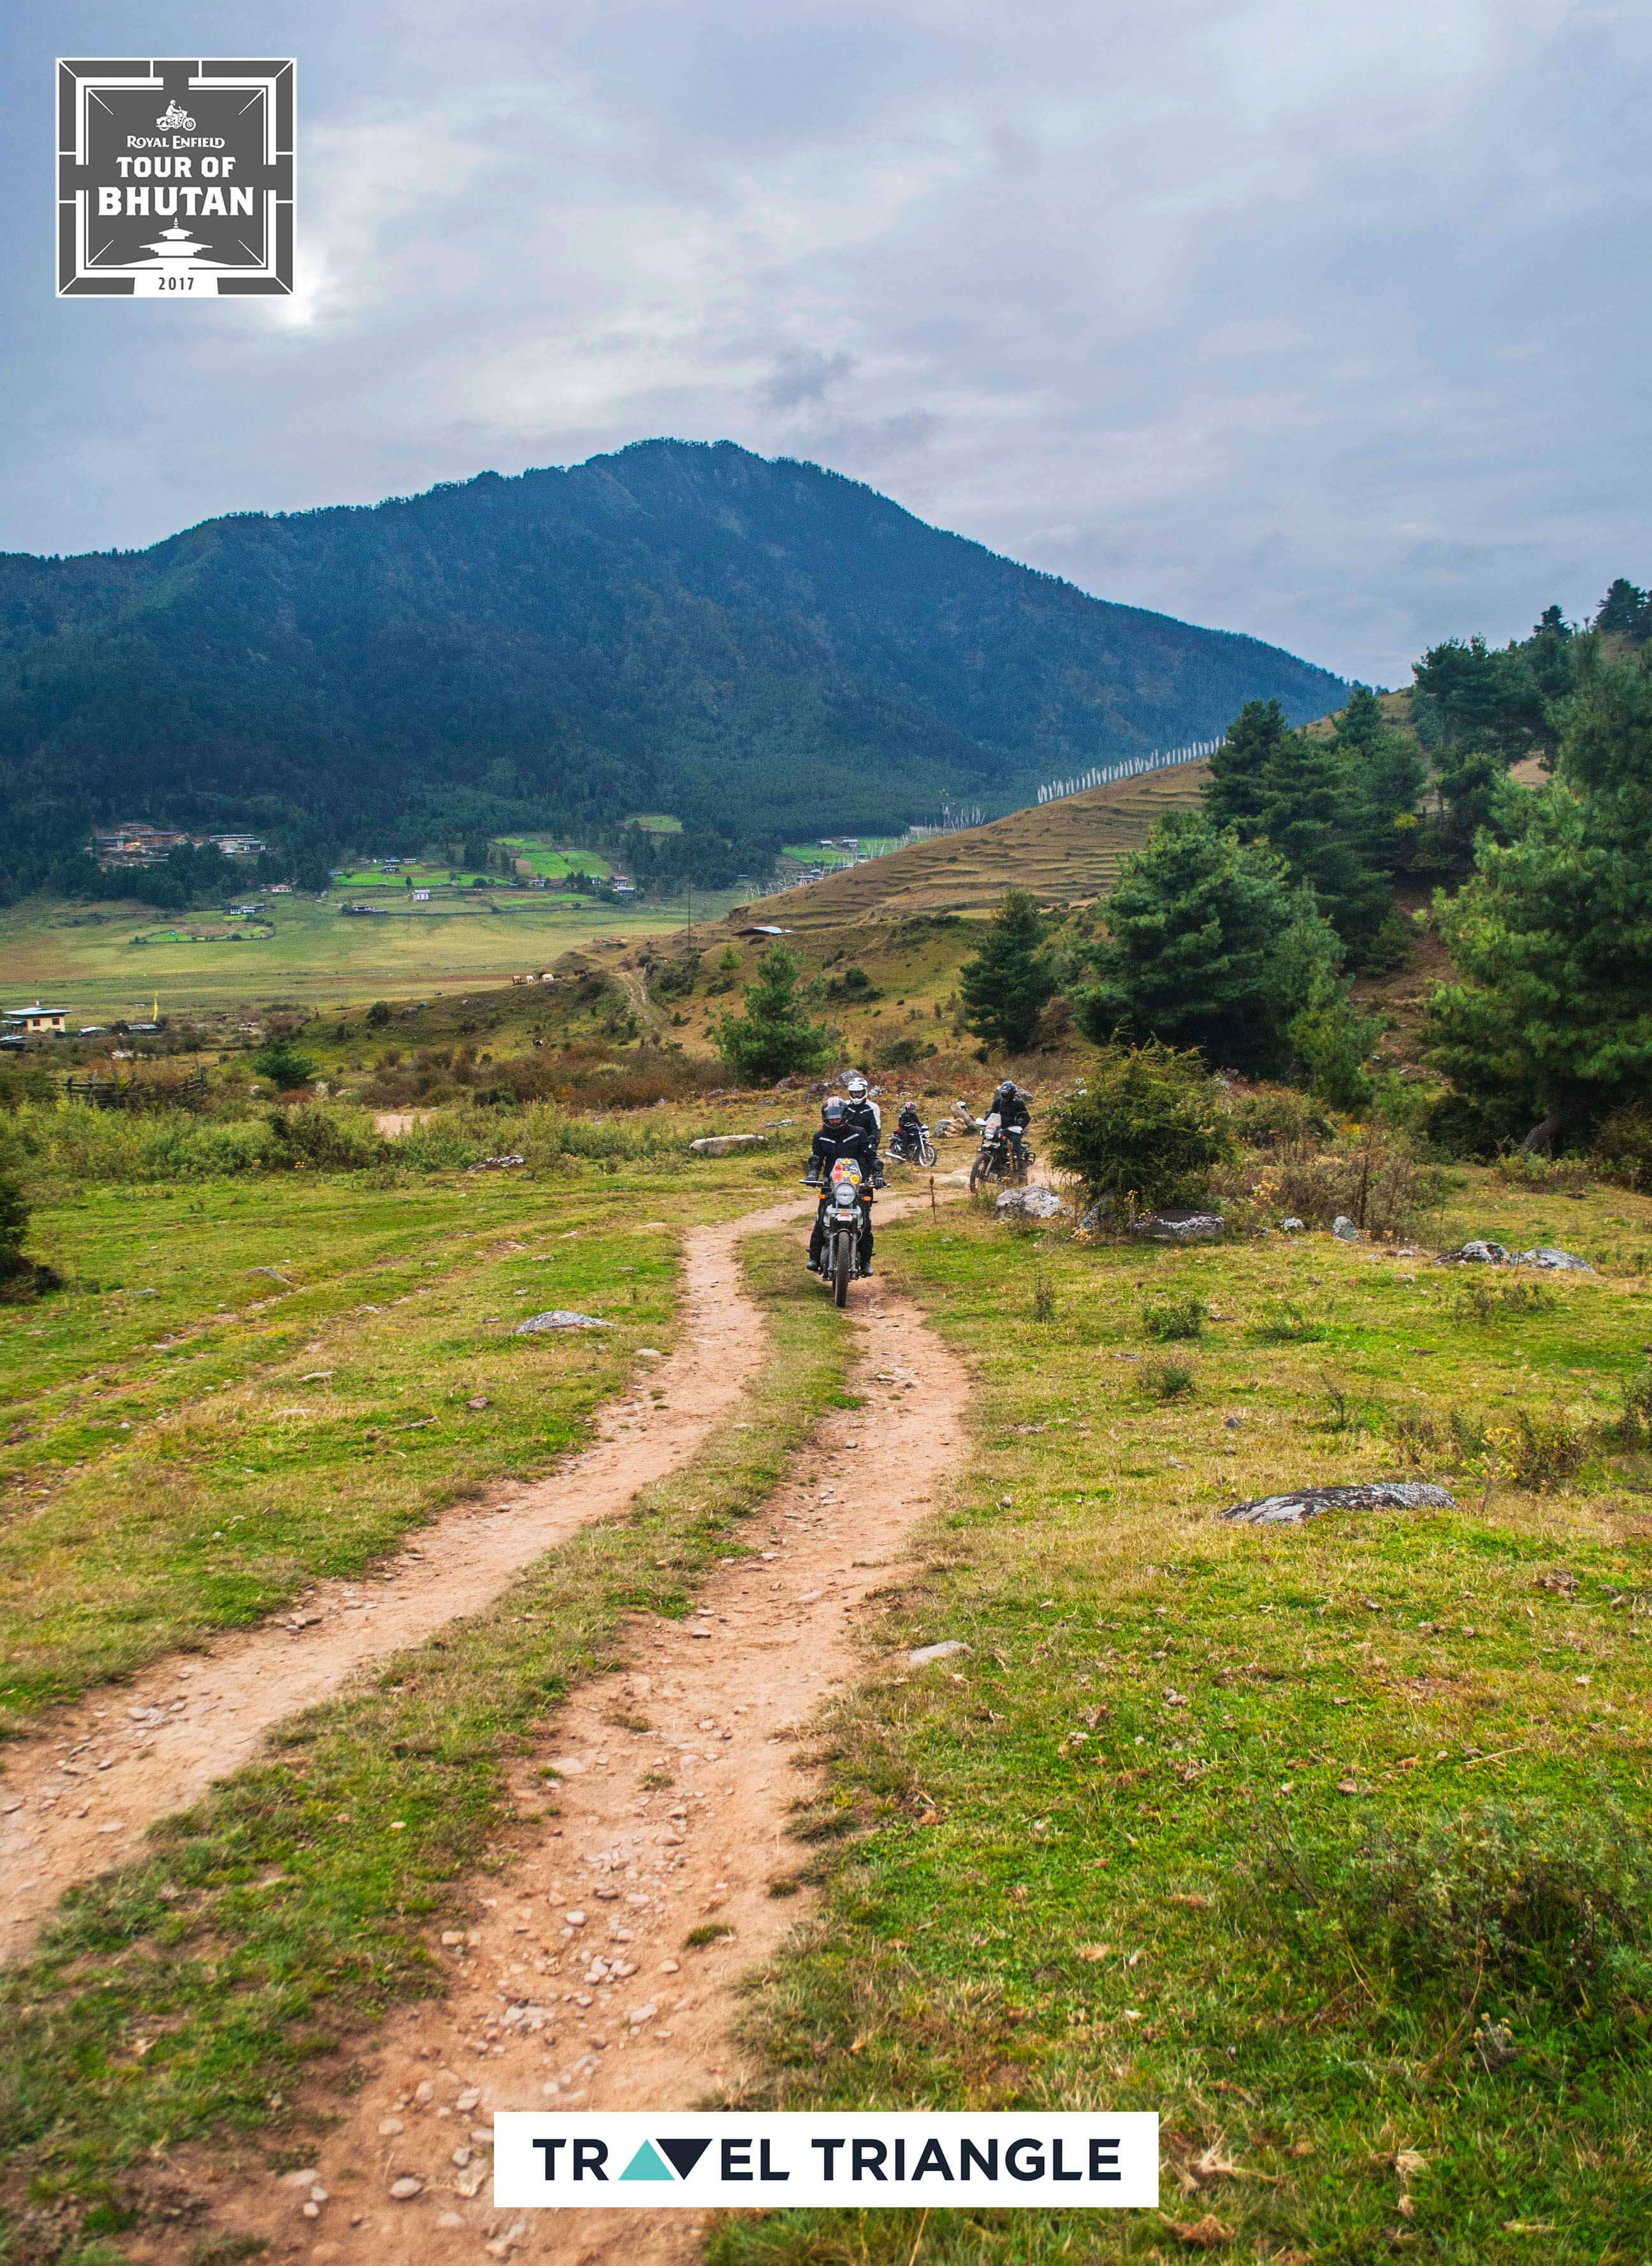 Punakha to Phobjikha: offroading in farms, hills